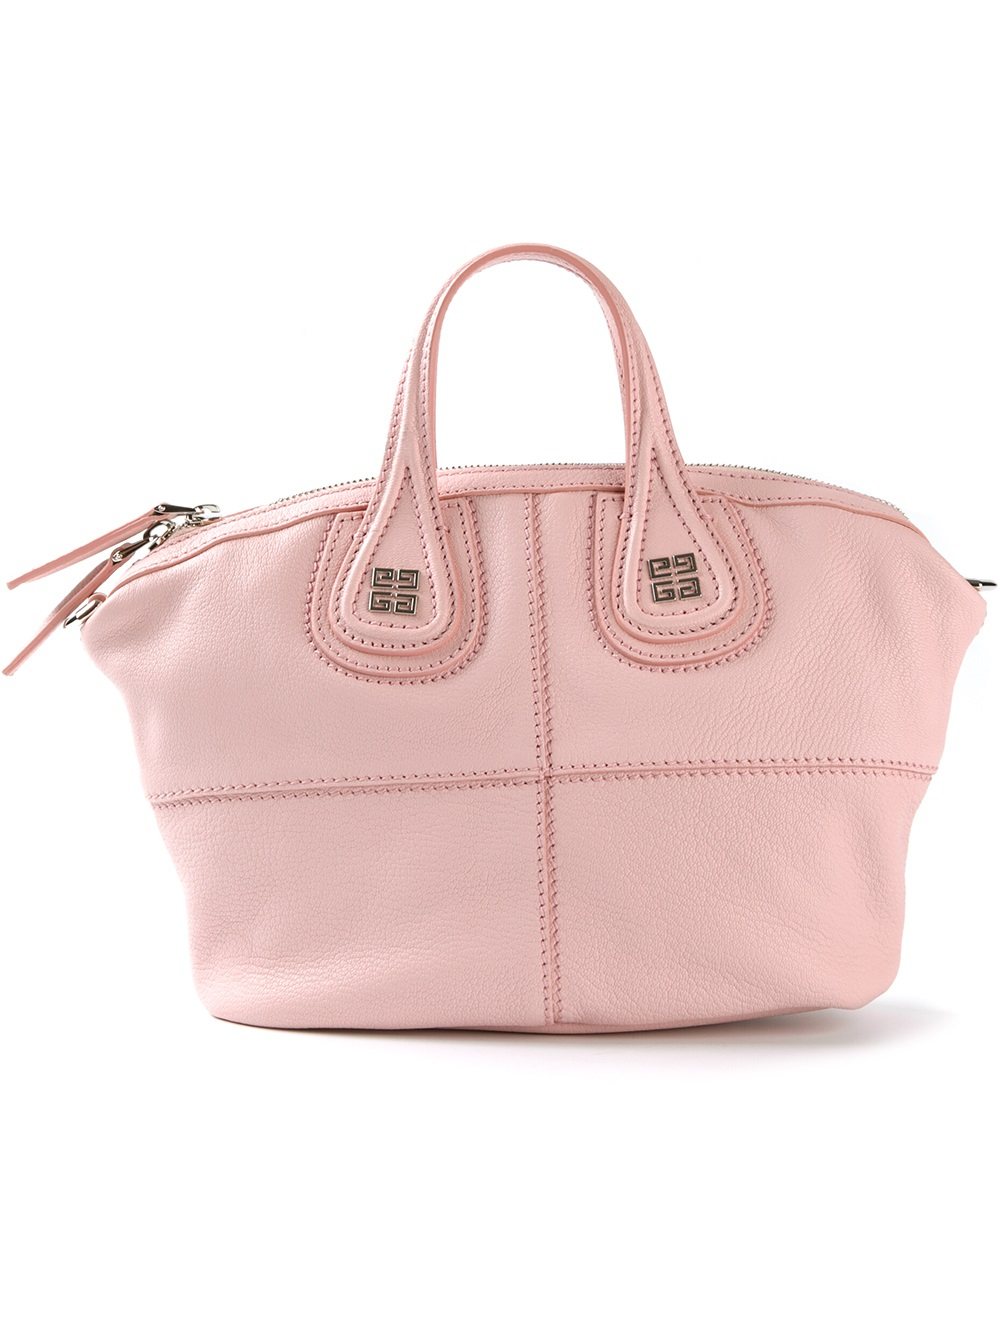 e232bd9374e5 Lyst - Givenchy Nightingale Mini Tote Bag in Pink